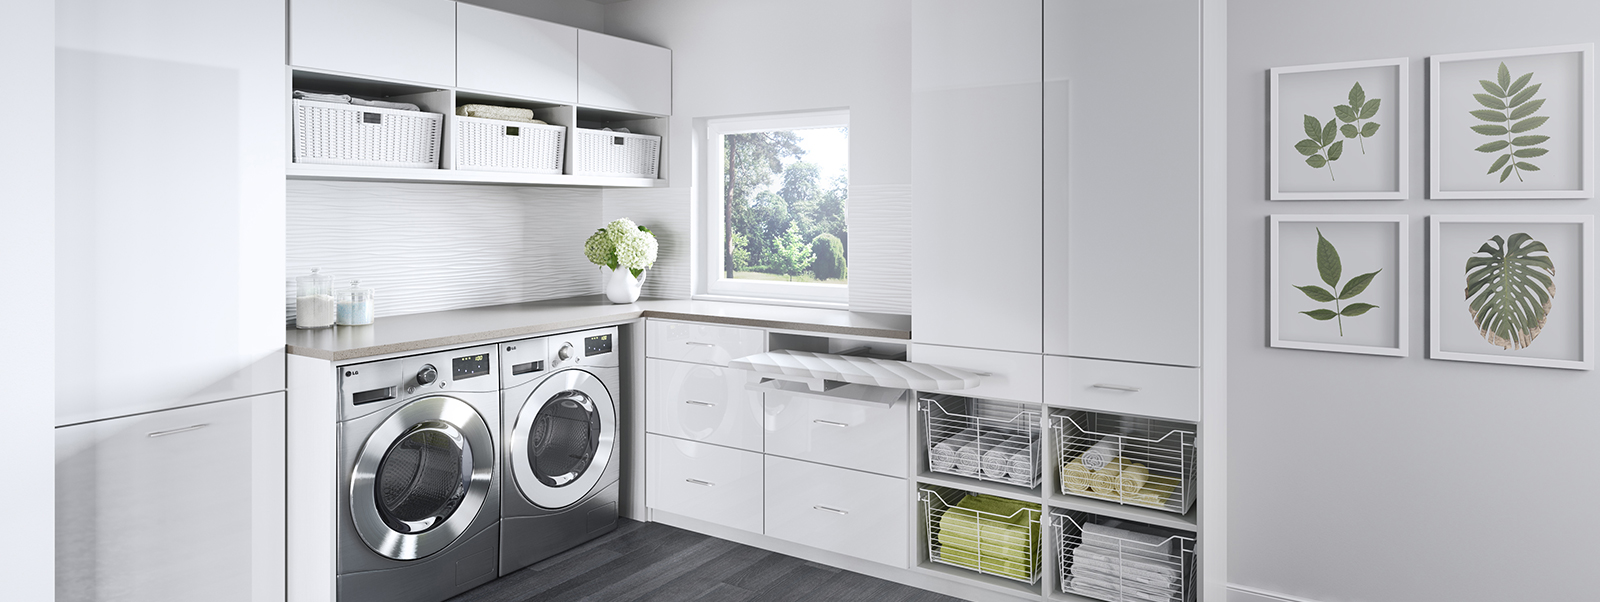 Laundry Room Cabinets & Storage Ideas | California Closets